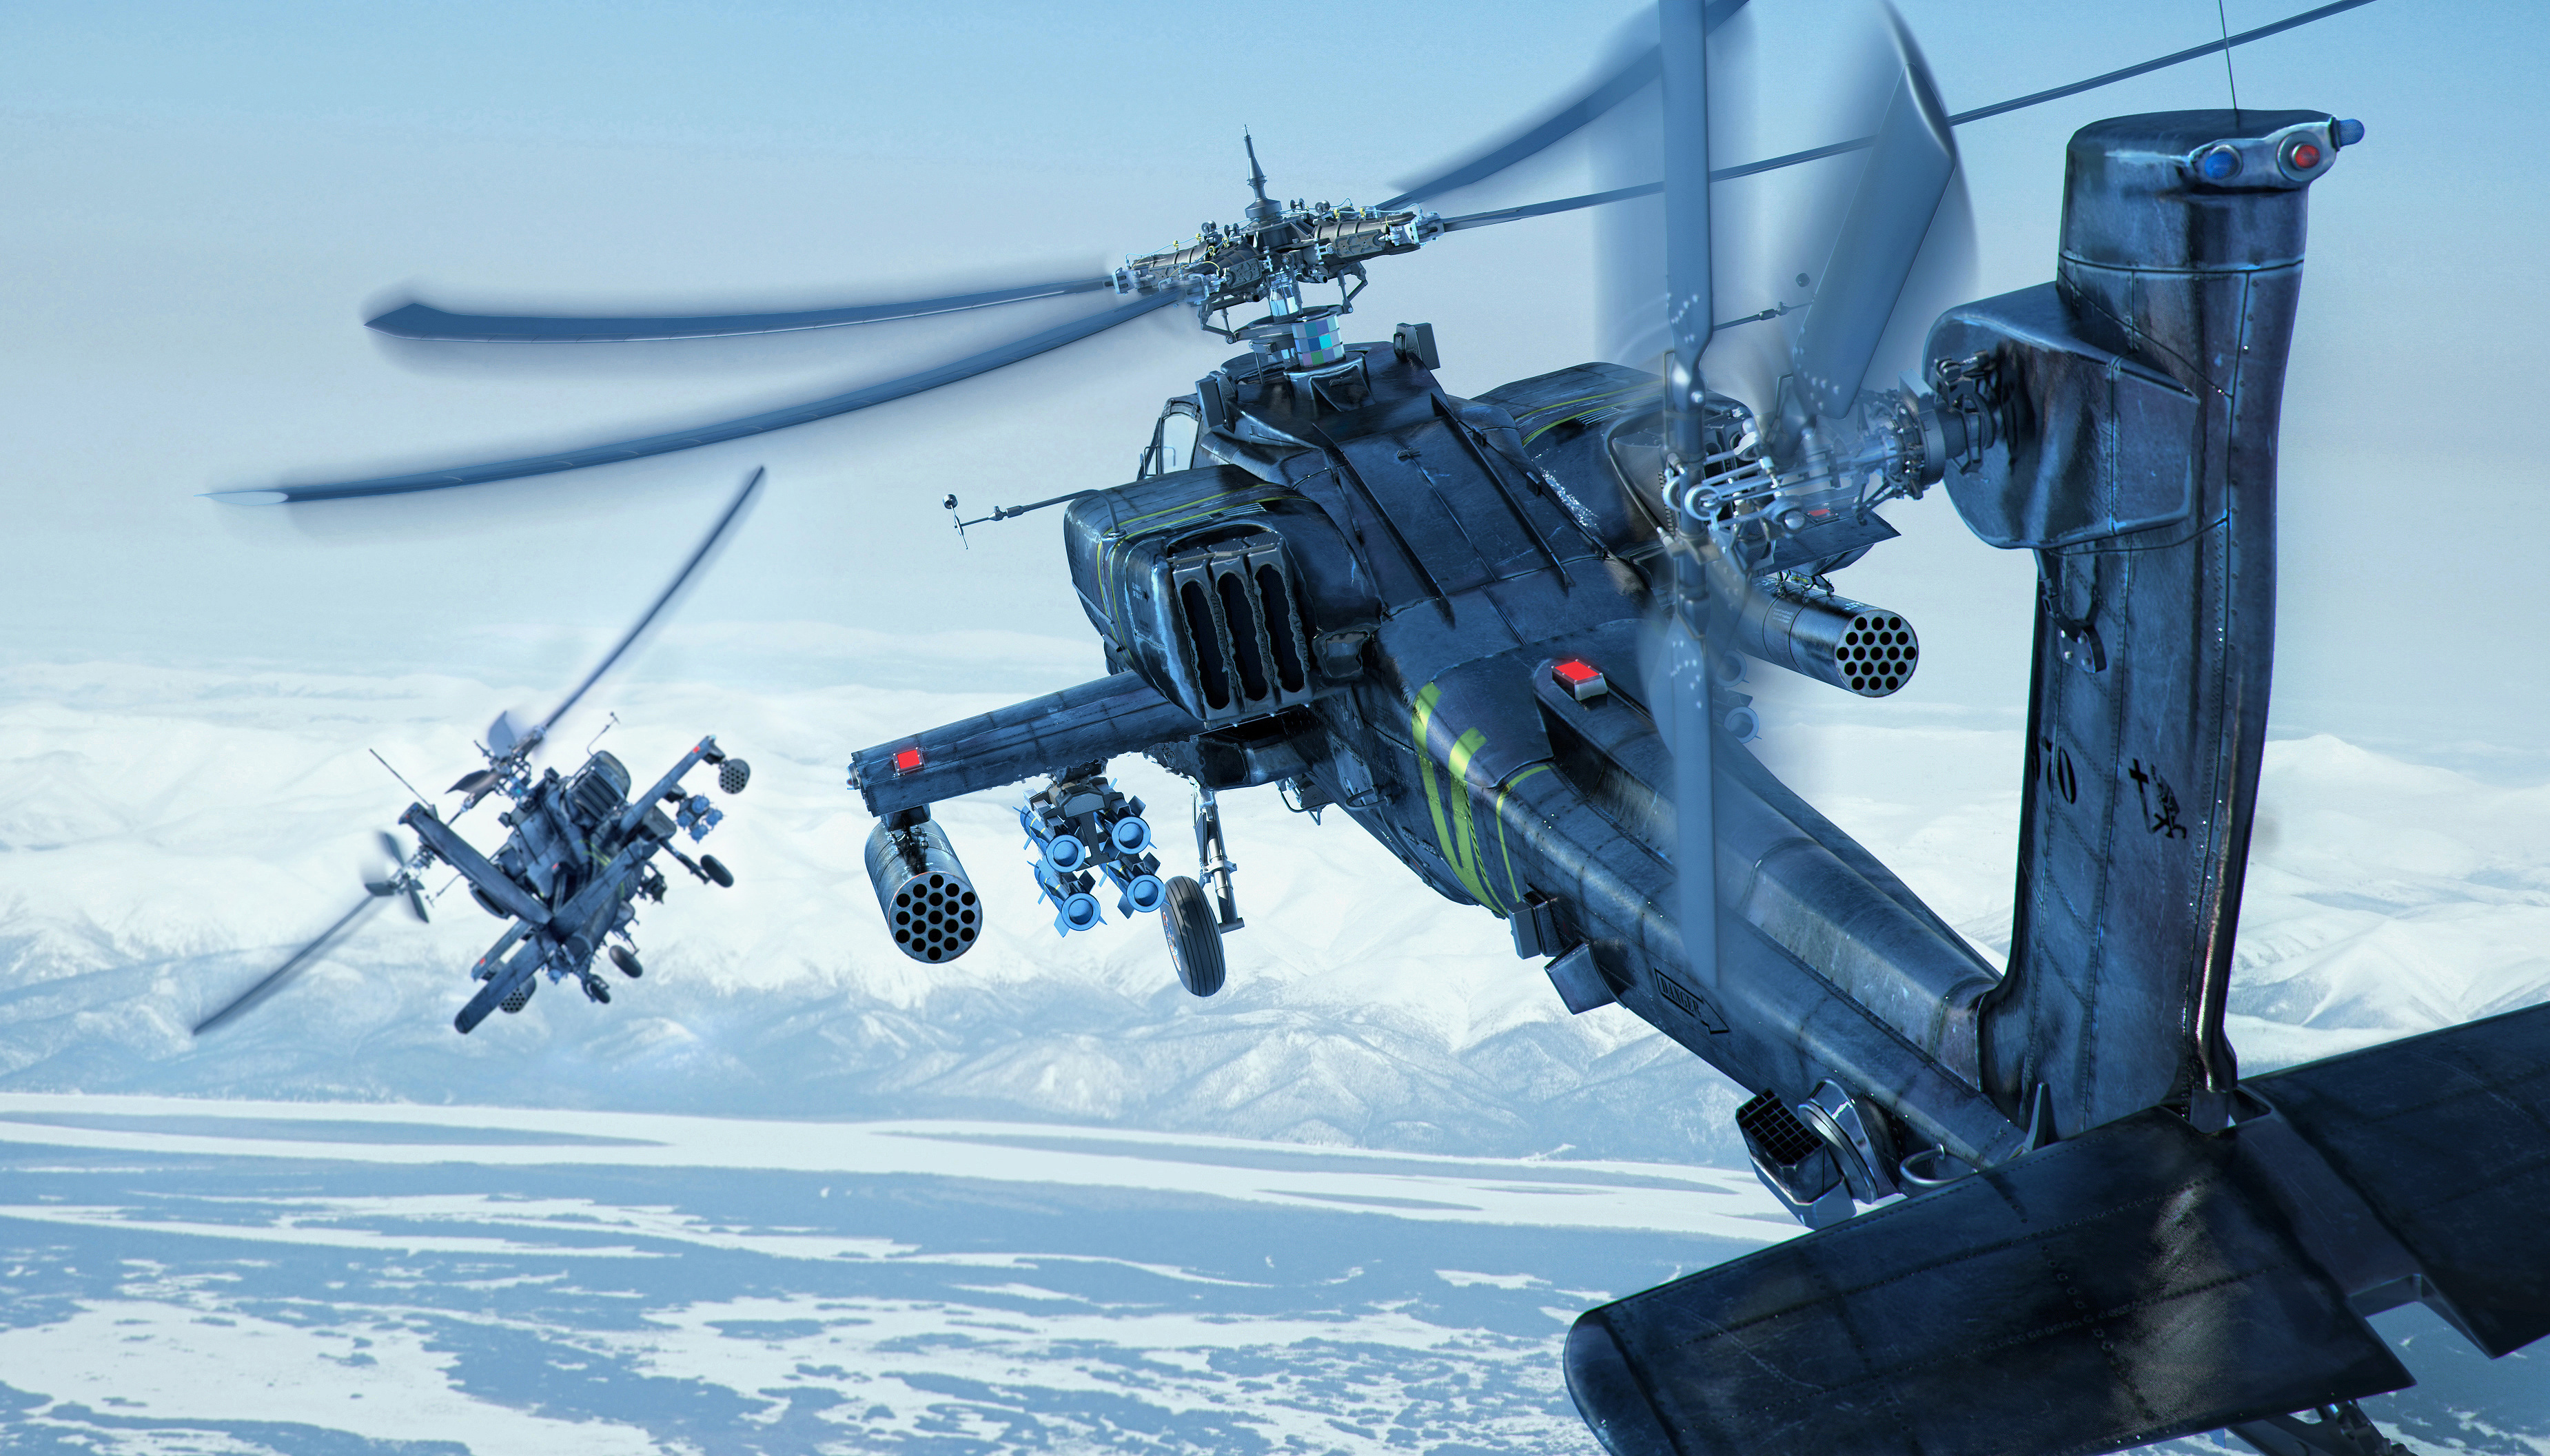 best fighter helicopter with Apache Desktop Wallpaper on 32789628122 furthermore Watch also The Airline Cockpit In 7 Simple Steps also Vnaf Allies Aircraft Cartoons furthermore By sub category.